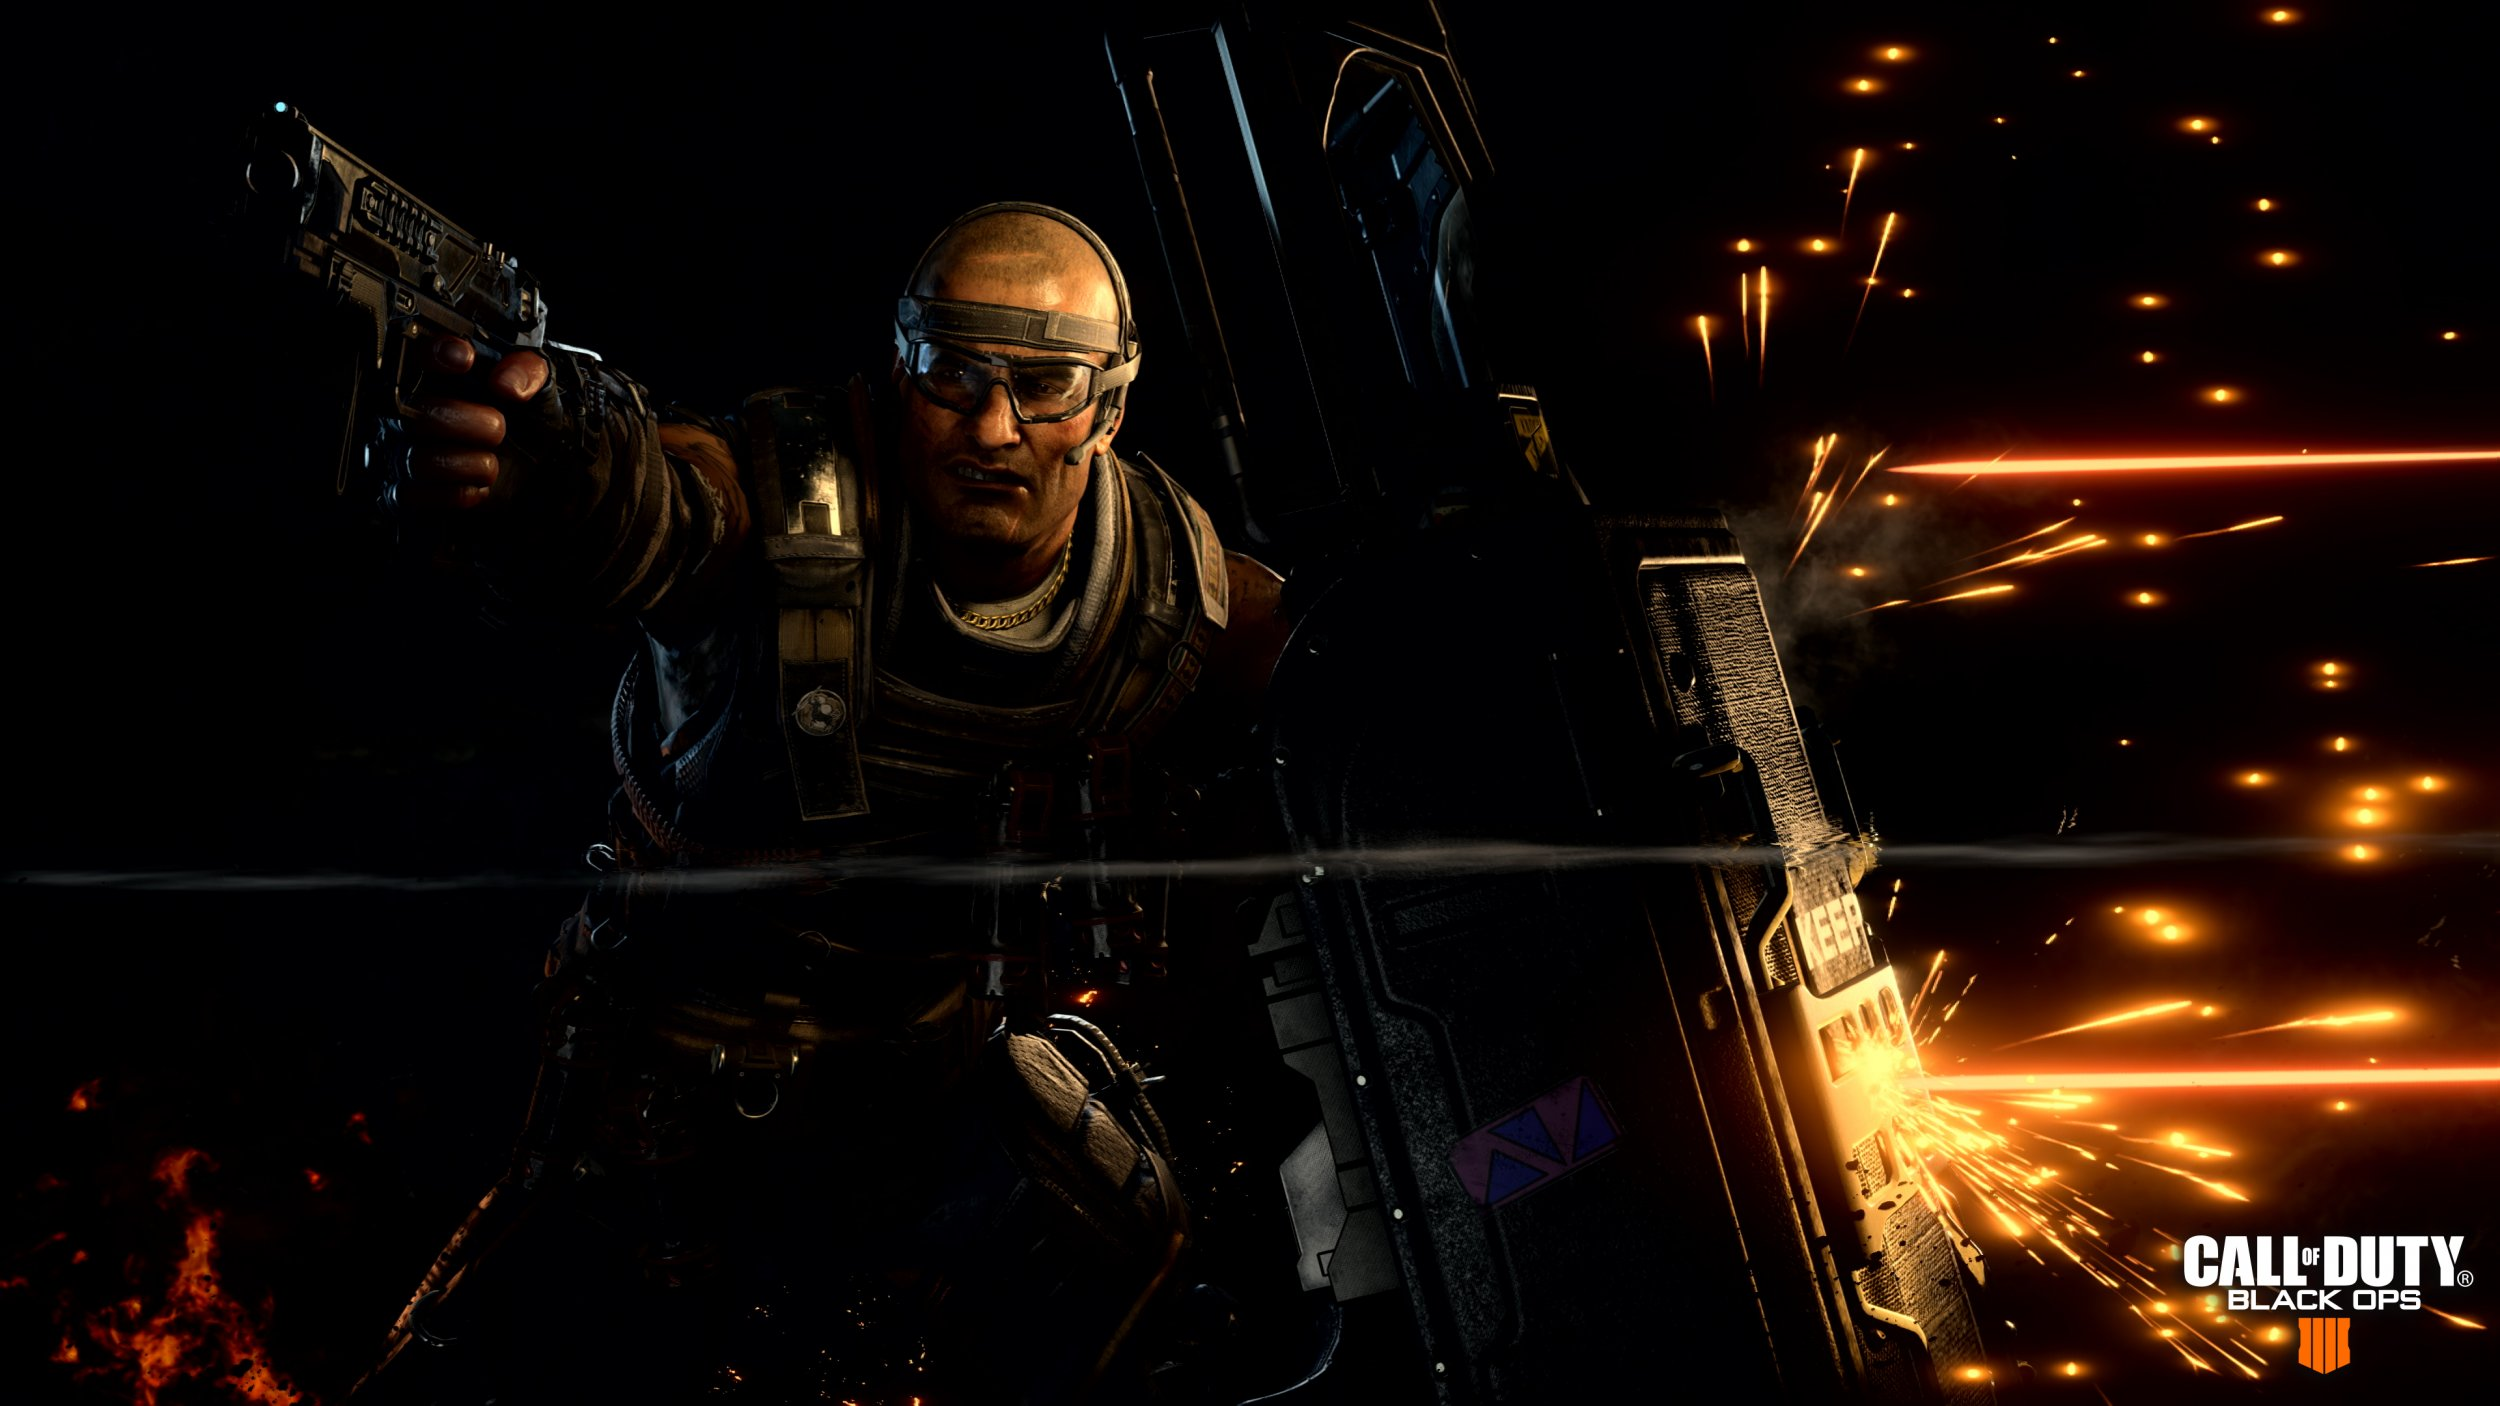 Call Of Duty Black Ops 4 Guide Best Worst Specialists For Multiplayer